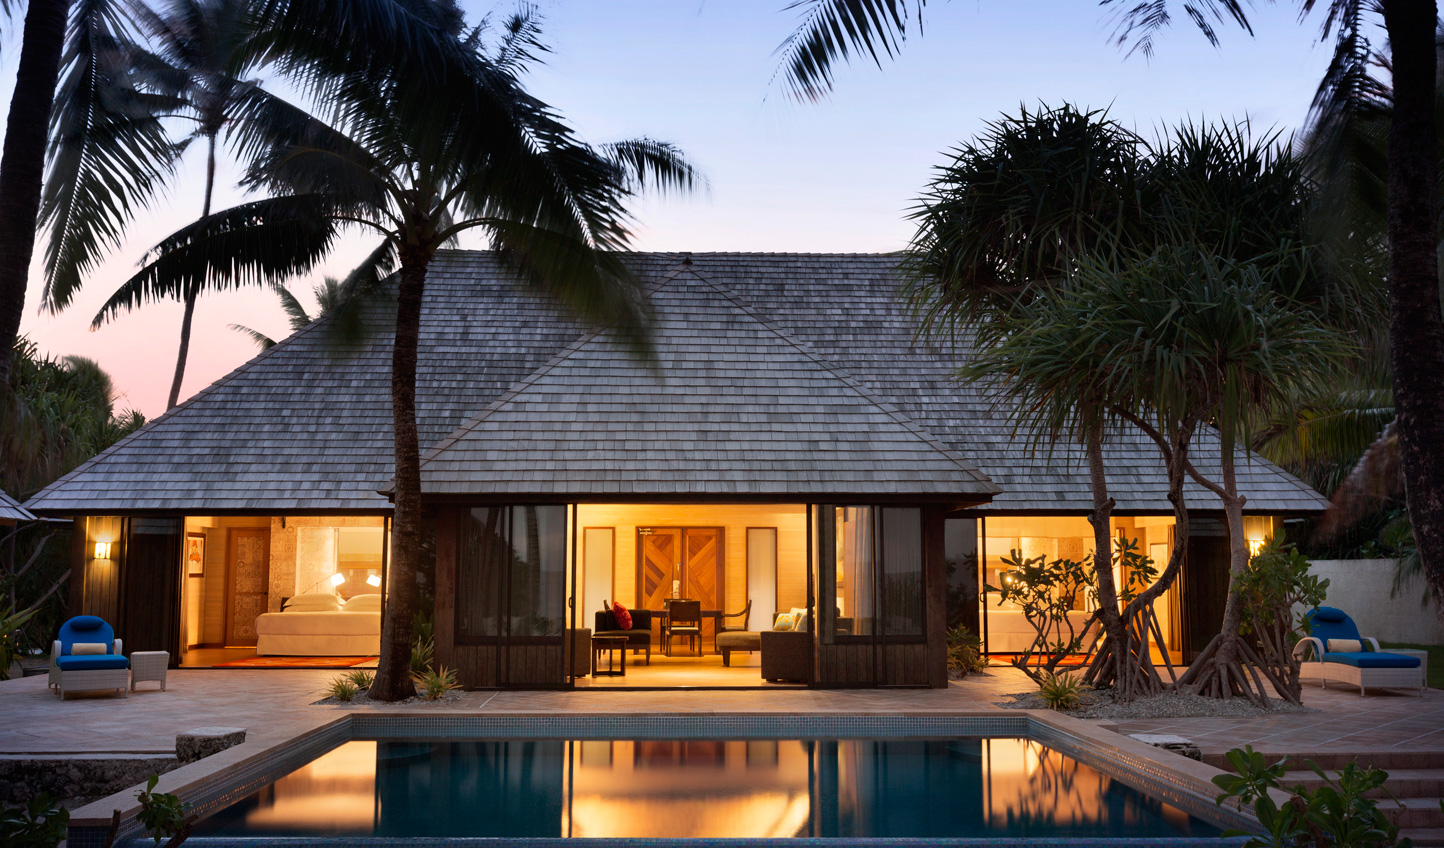 Prefer to feel the sand between your toes? Head to one of the Beach Villas